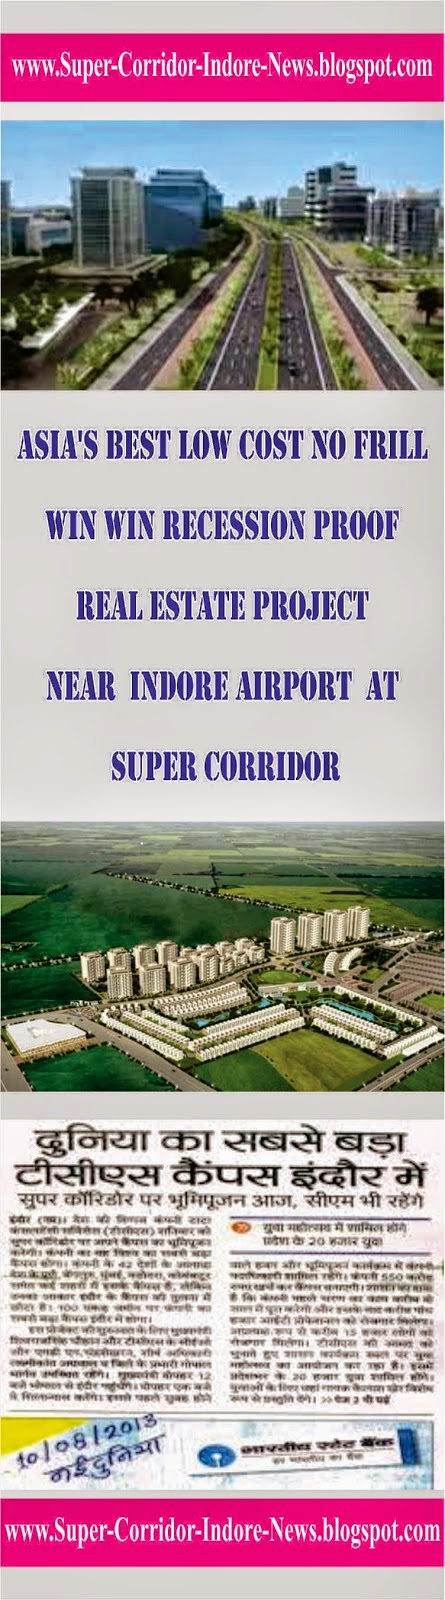 www.Super-Corridor-Indore-News.blogspot.com